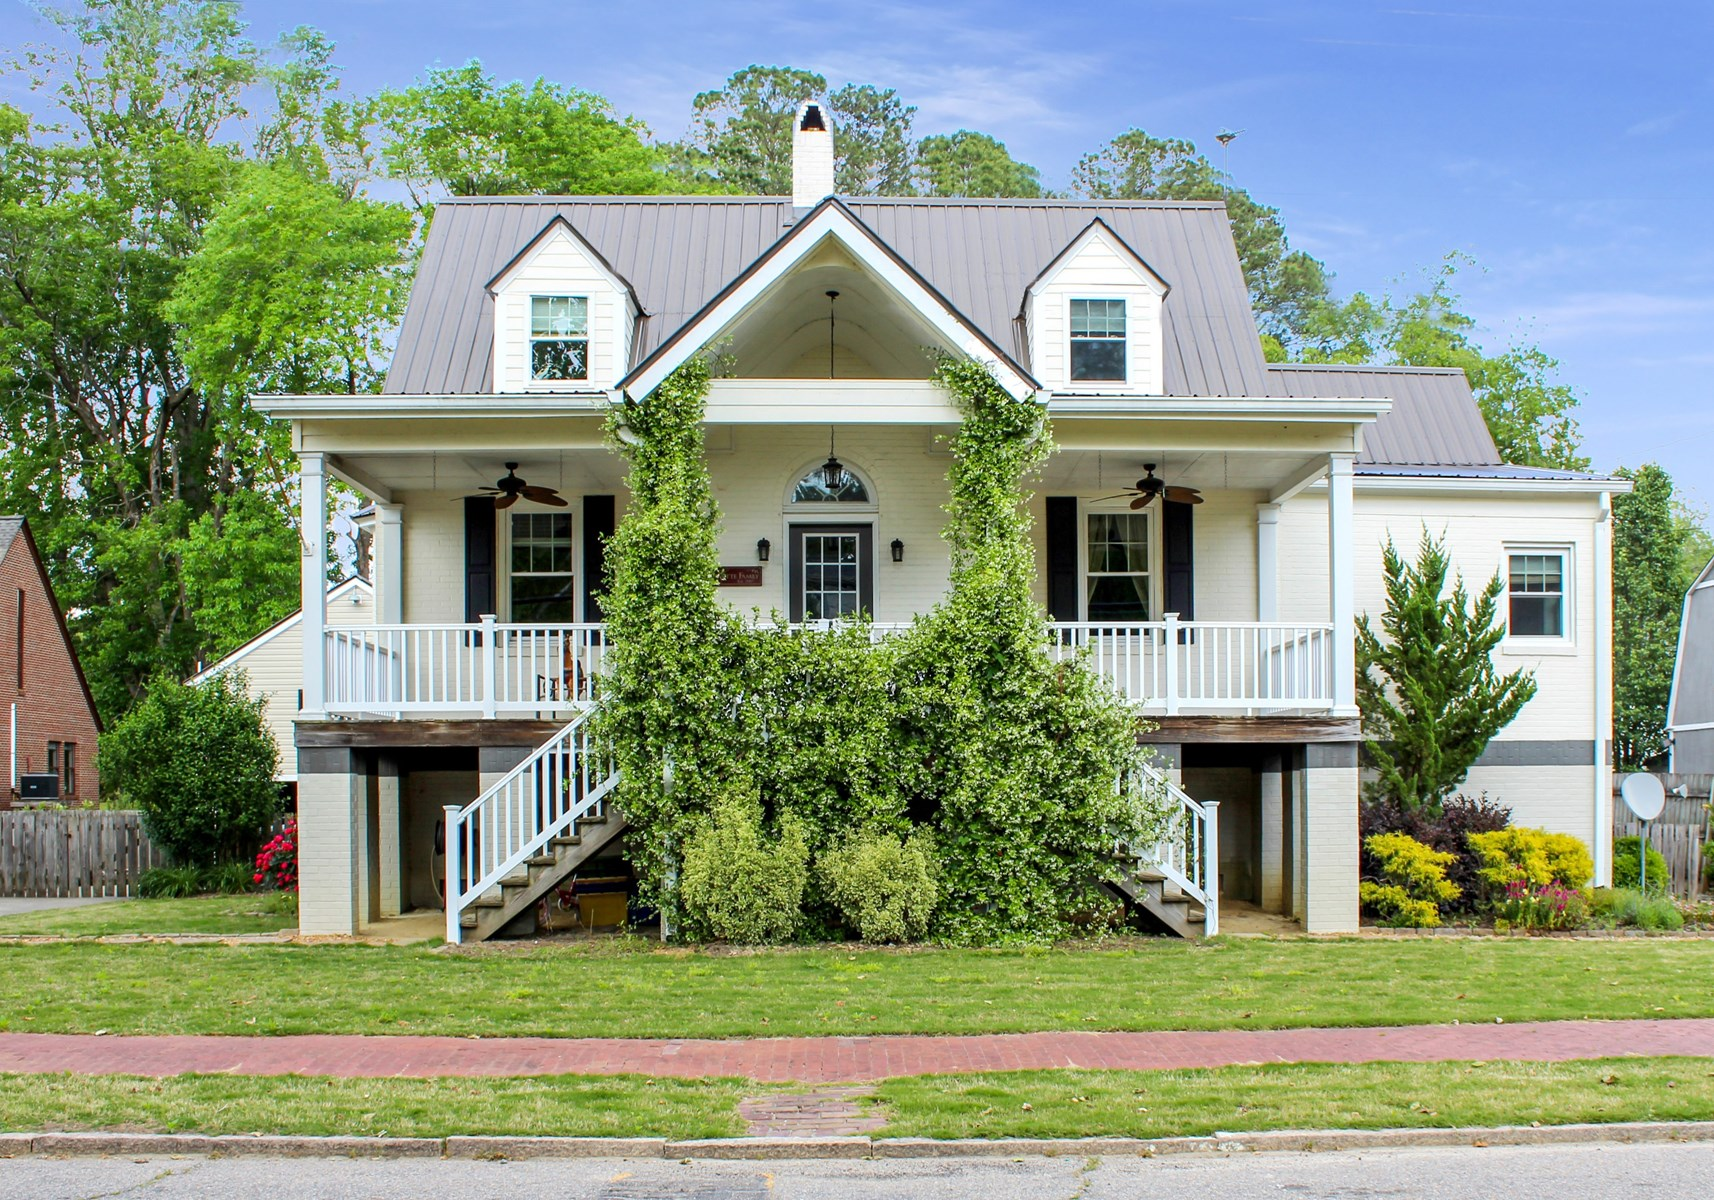 Beautifully updated 1940's home located in Windor, NC